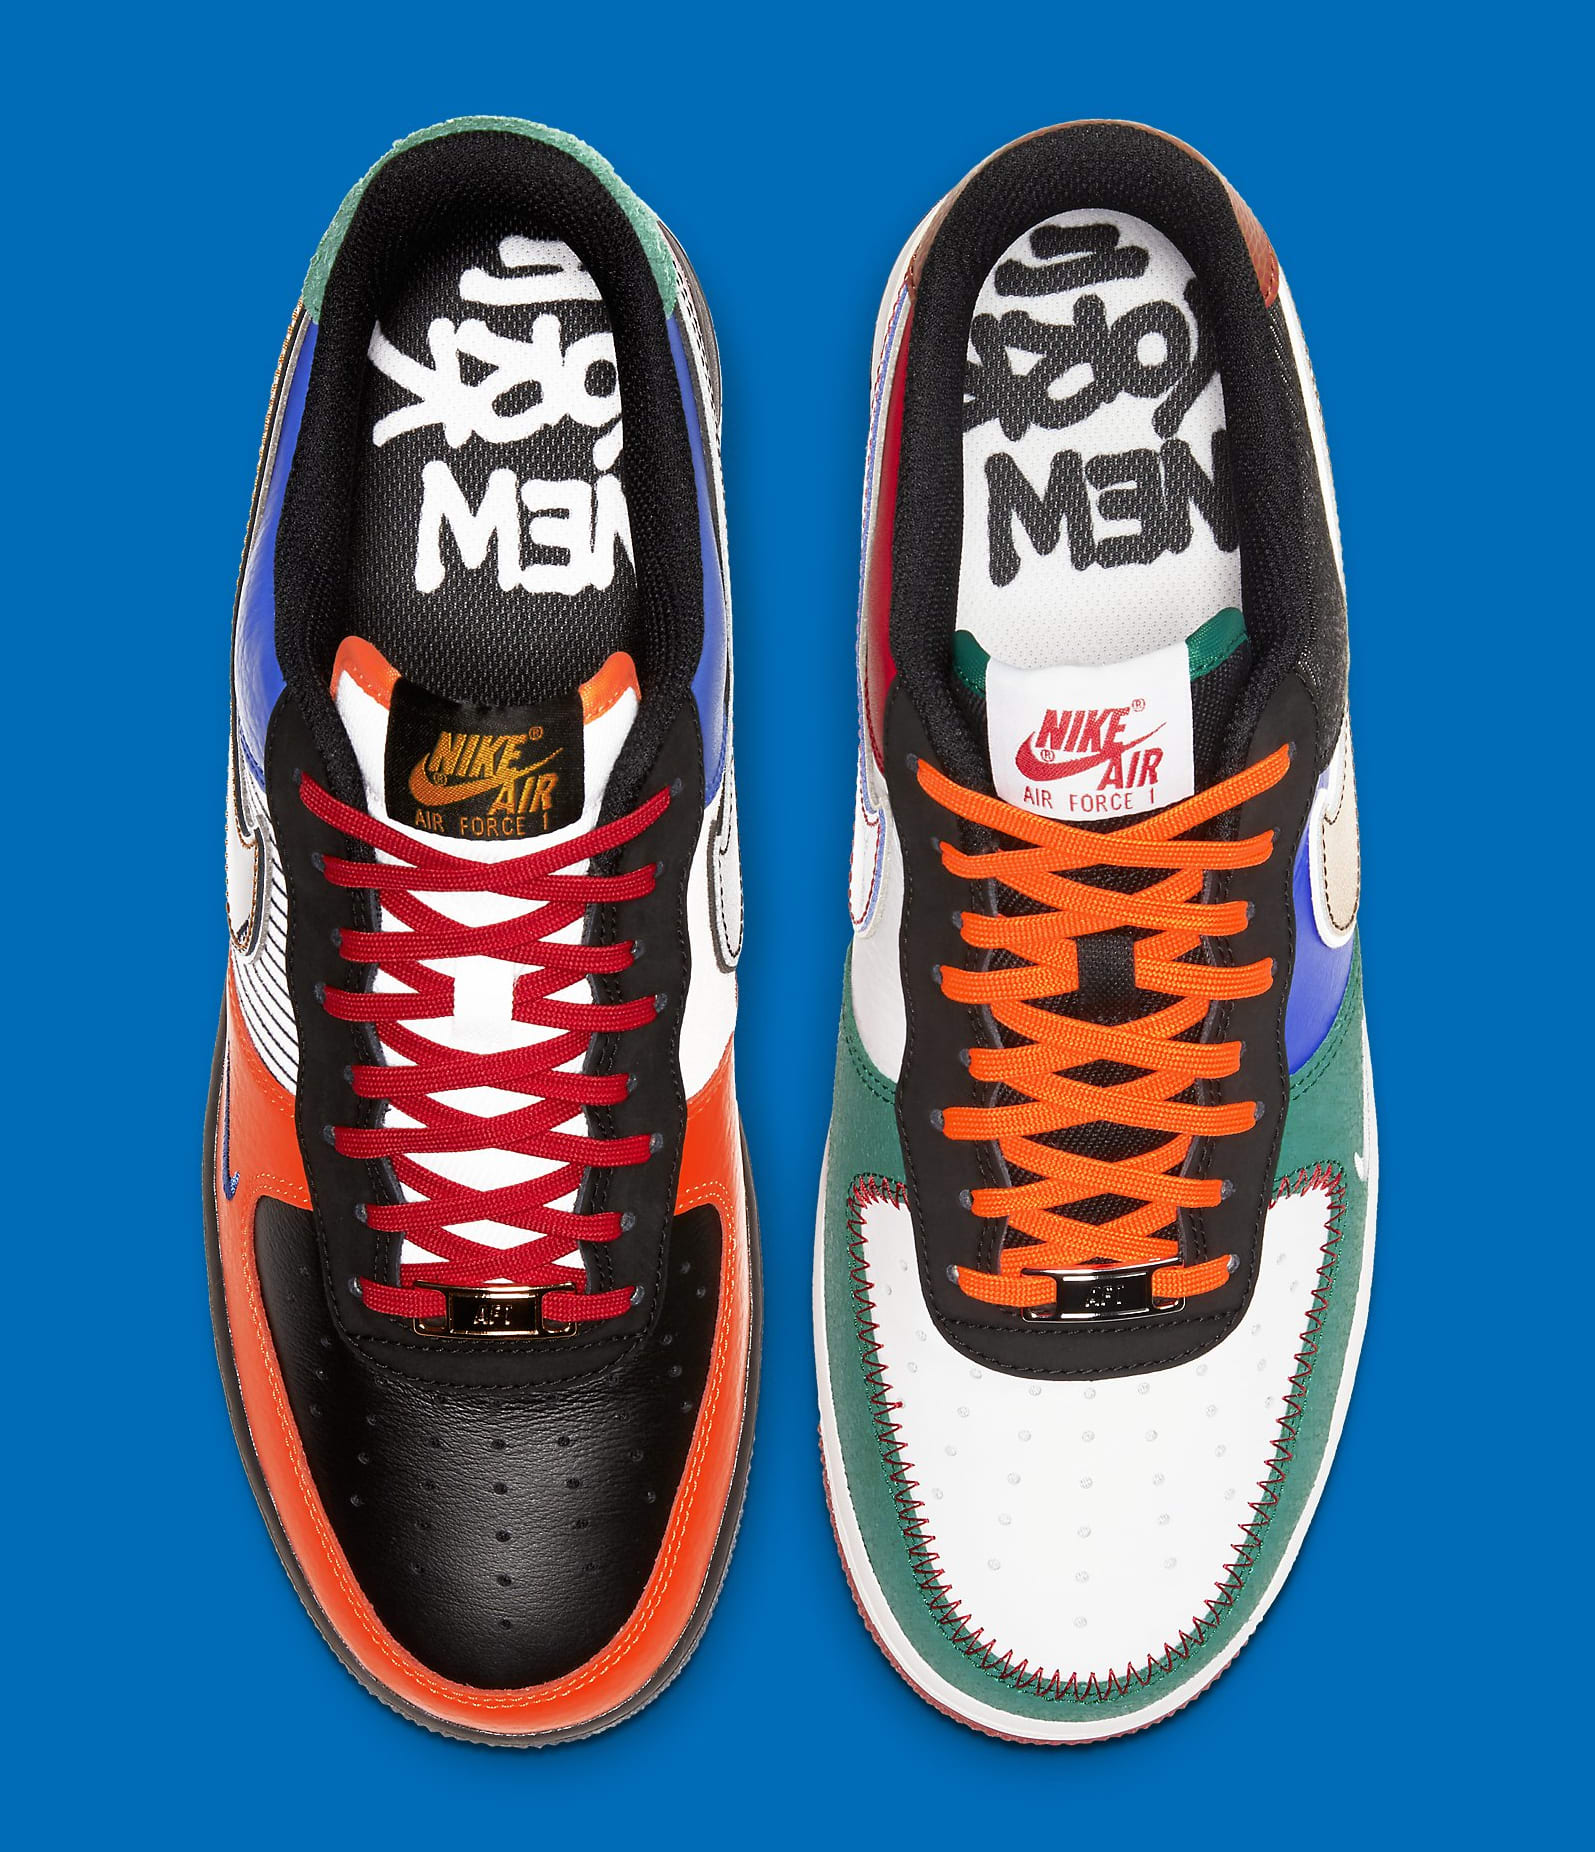 nike-air-force-1-low-what-the-nyc-ct3610-100-top